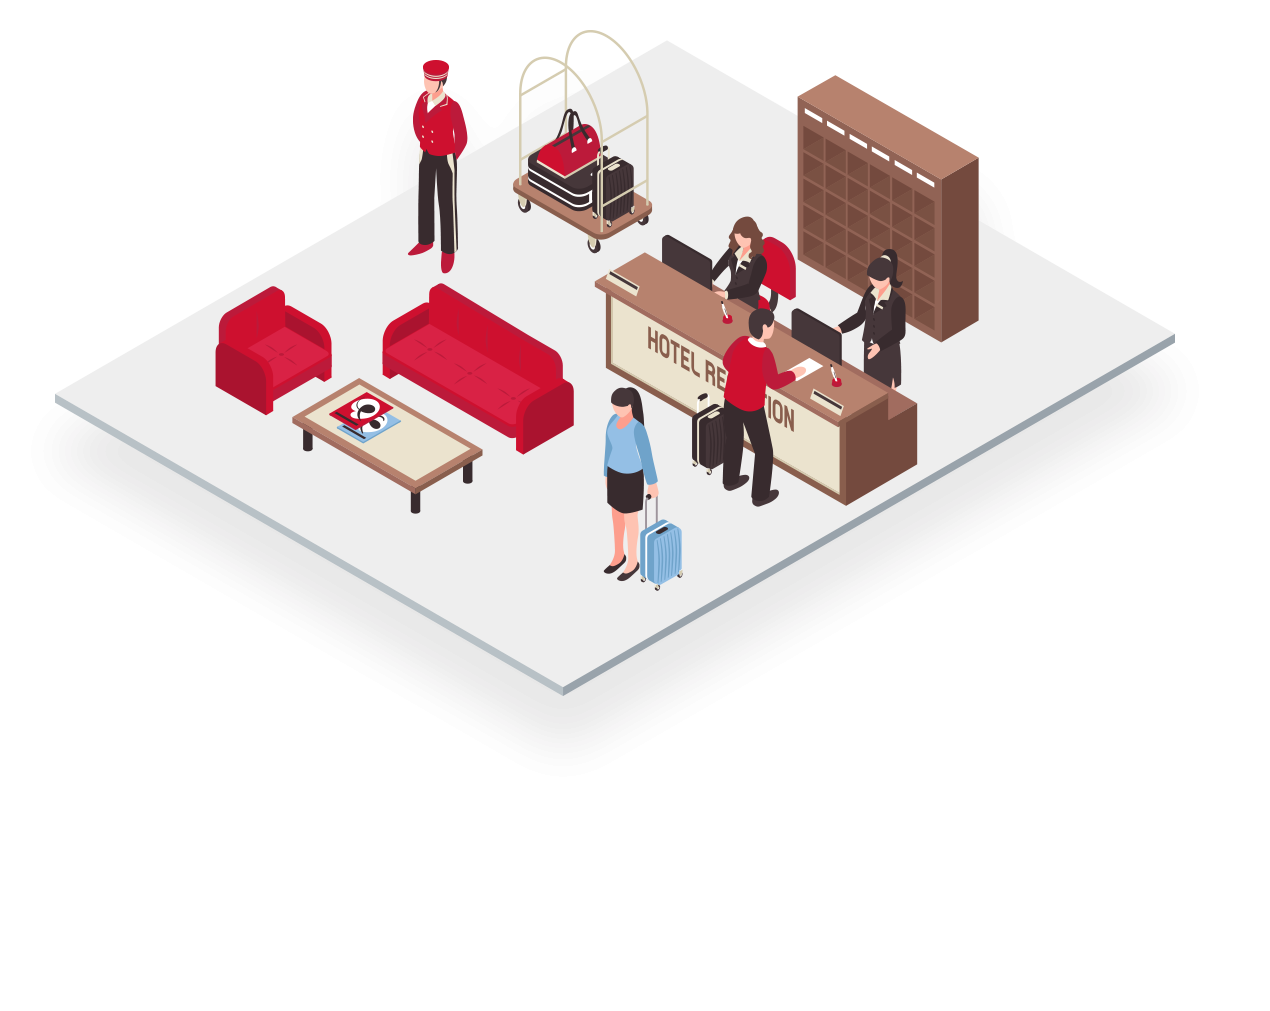 Infor Hospitality software increase management performance